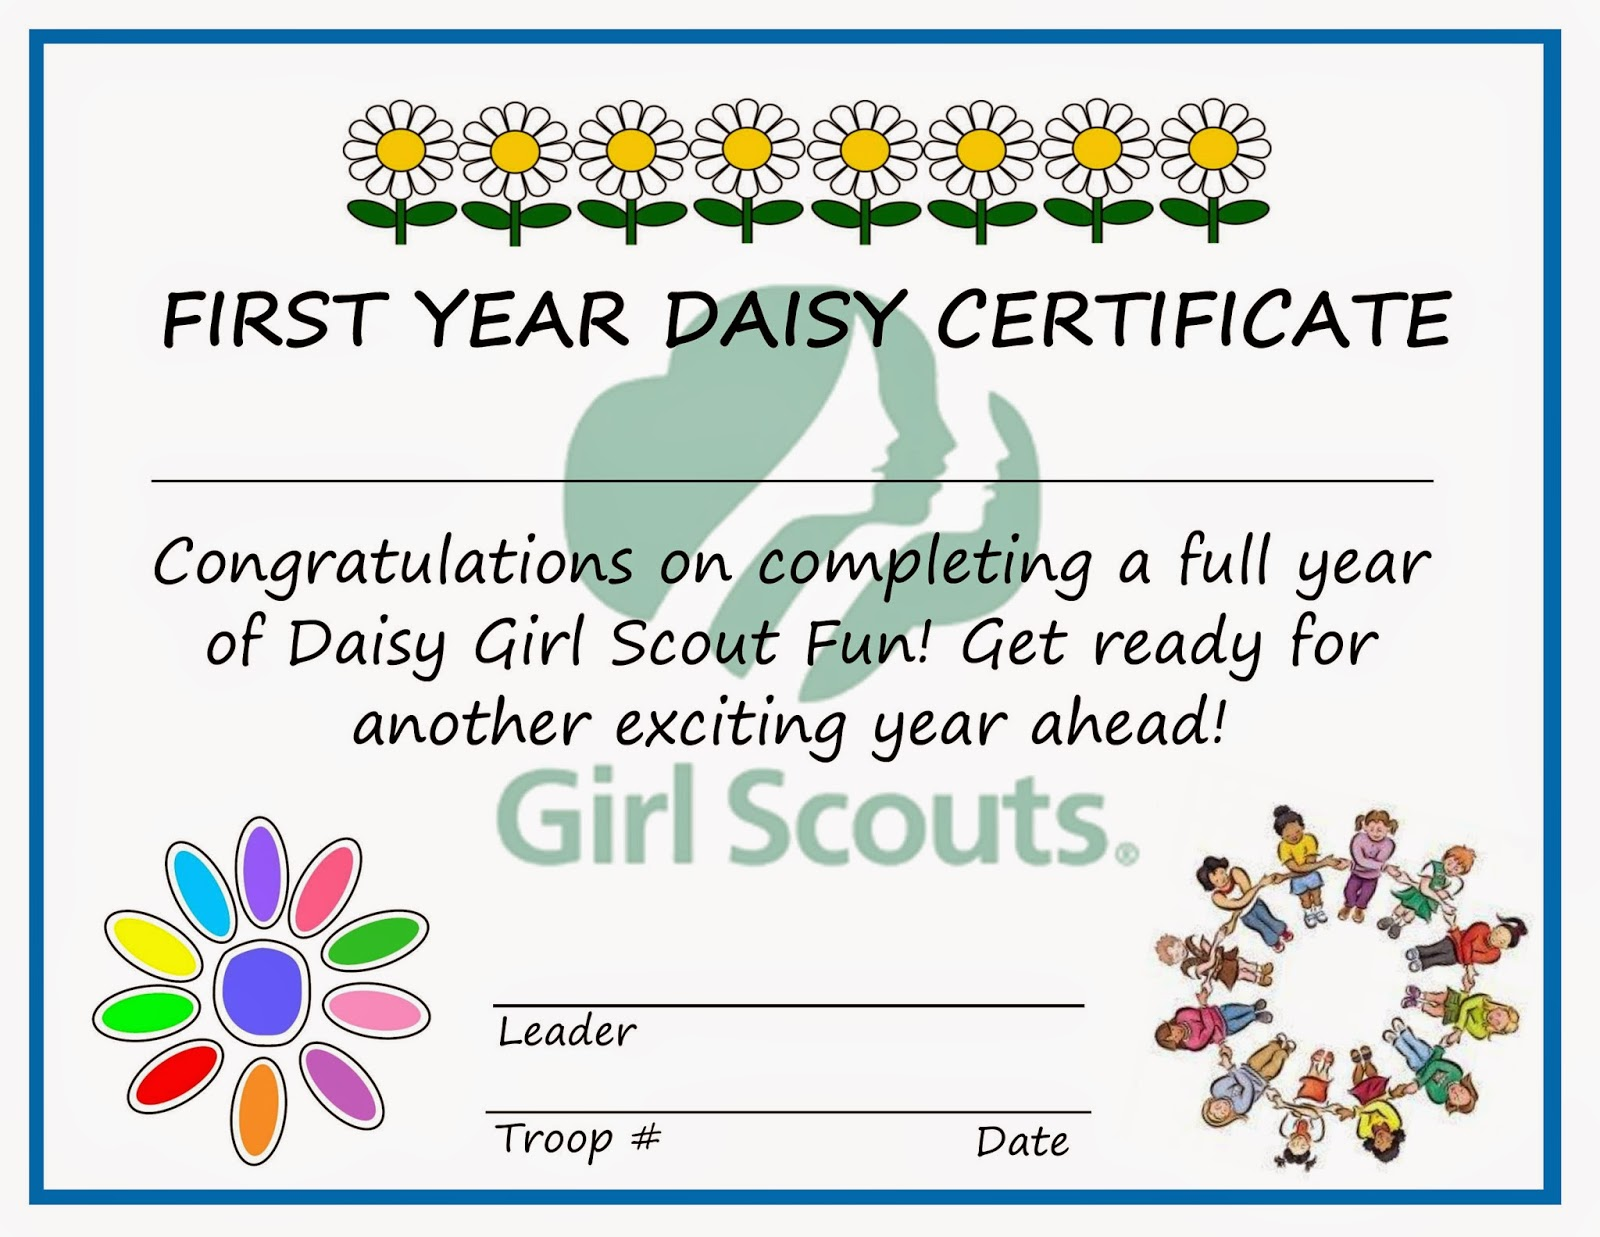 A mindful momma girl scouting momma first year daisy certificate yelopaper